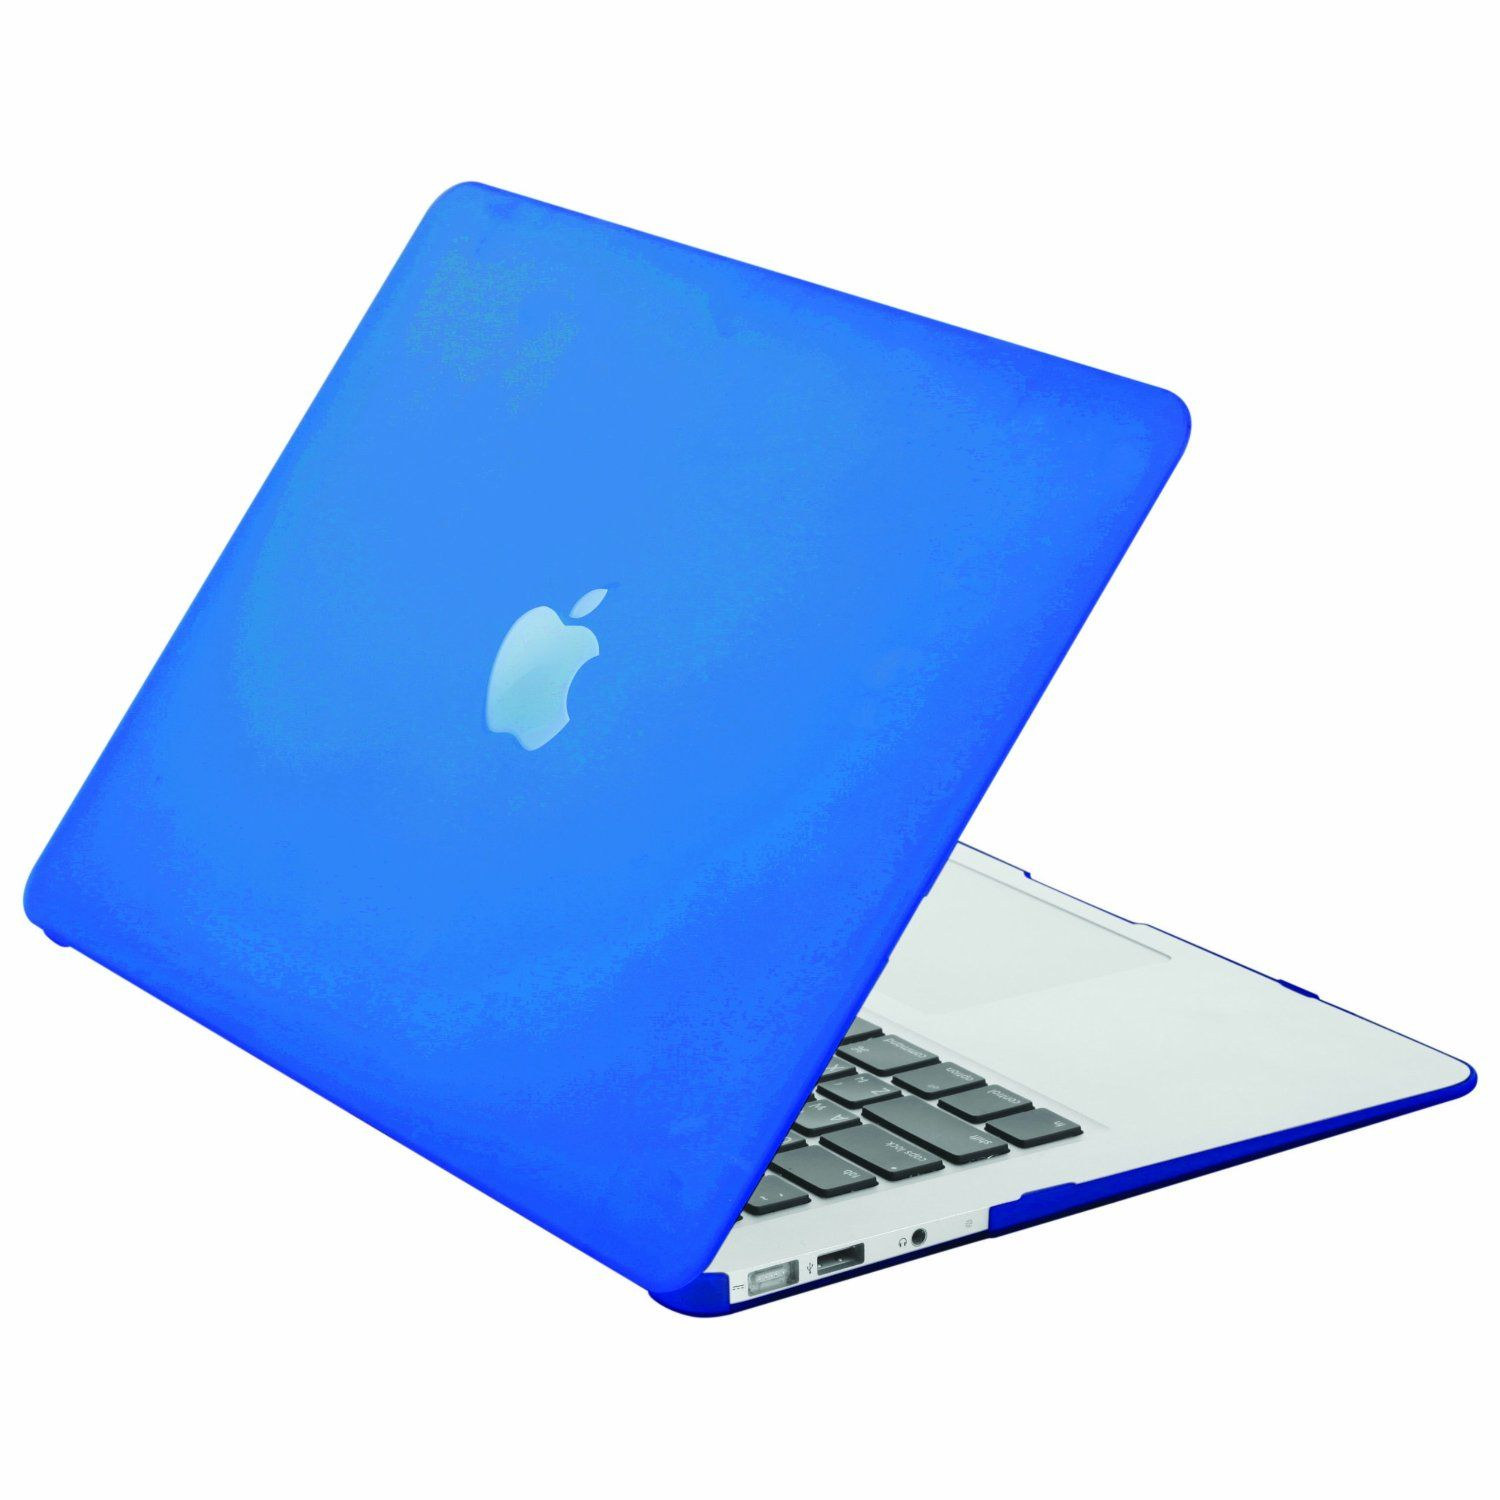 Apple Laptop Blue Apple Laptop By The End Of This Semester I Would